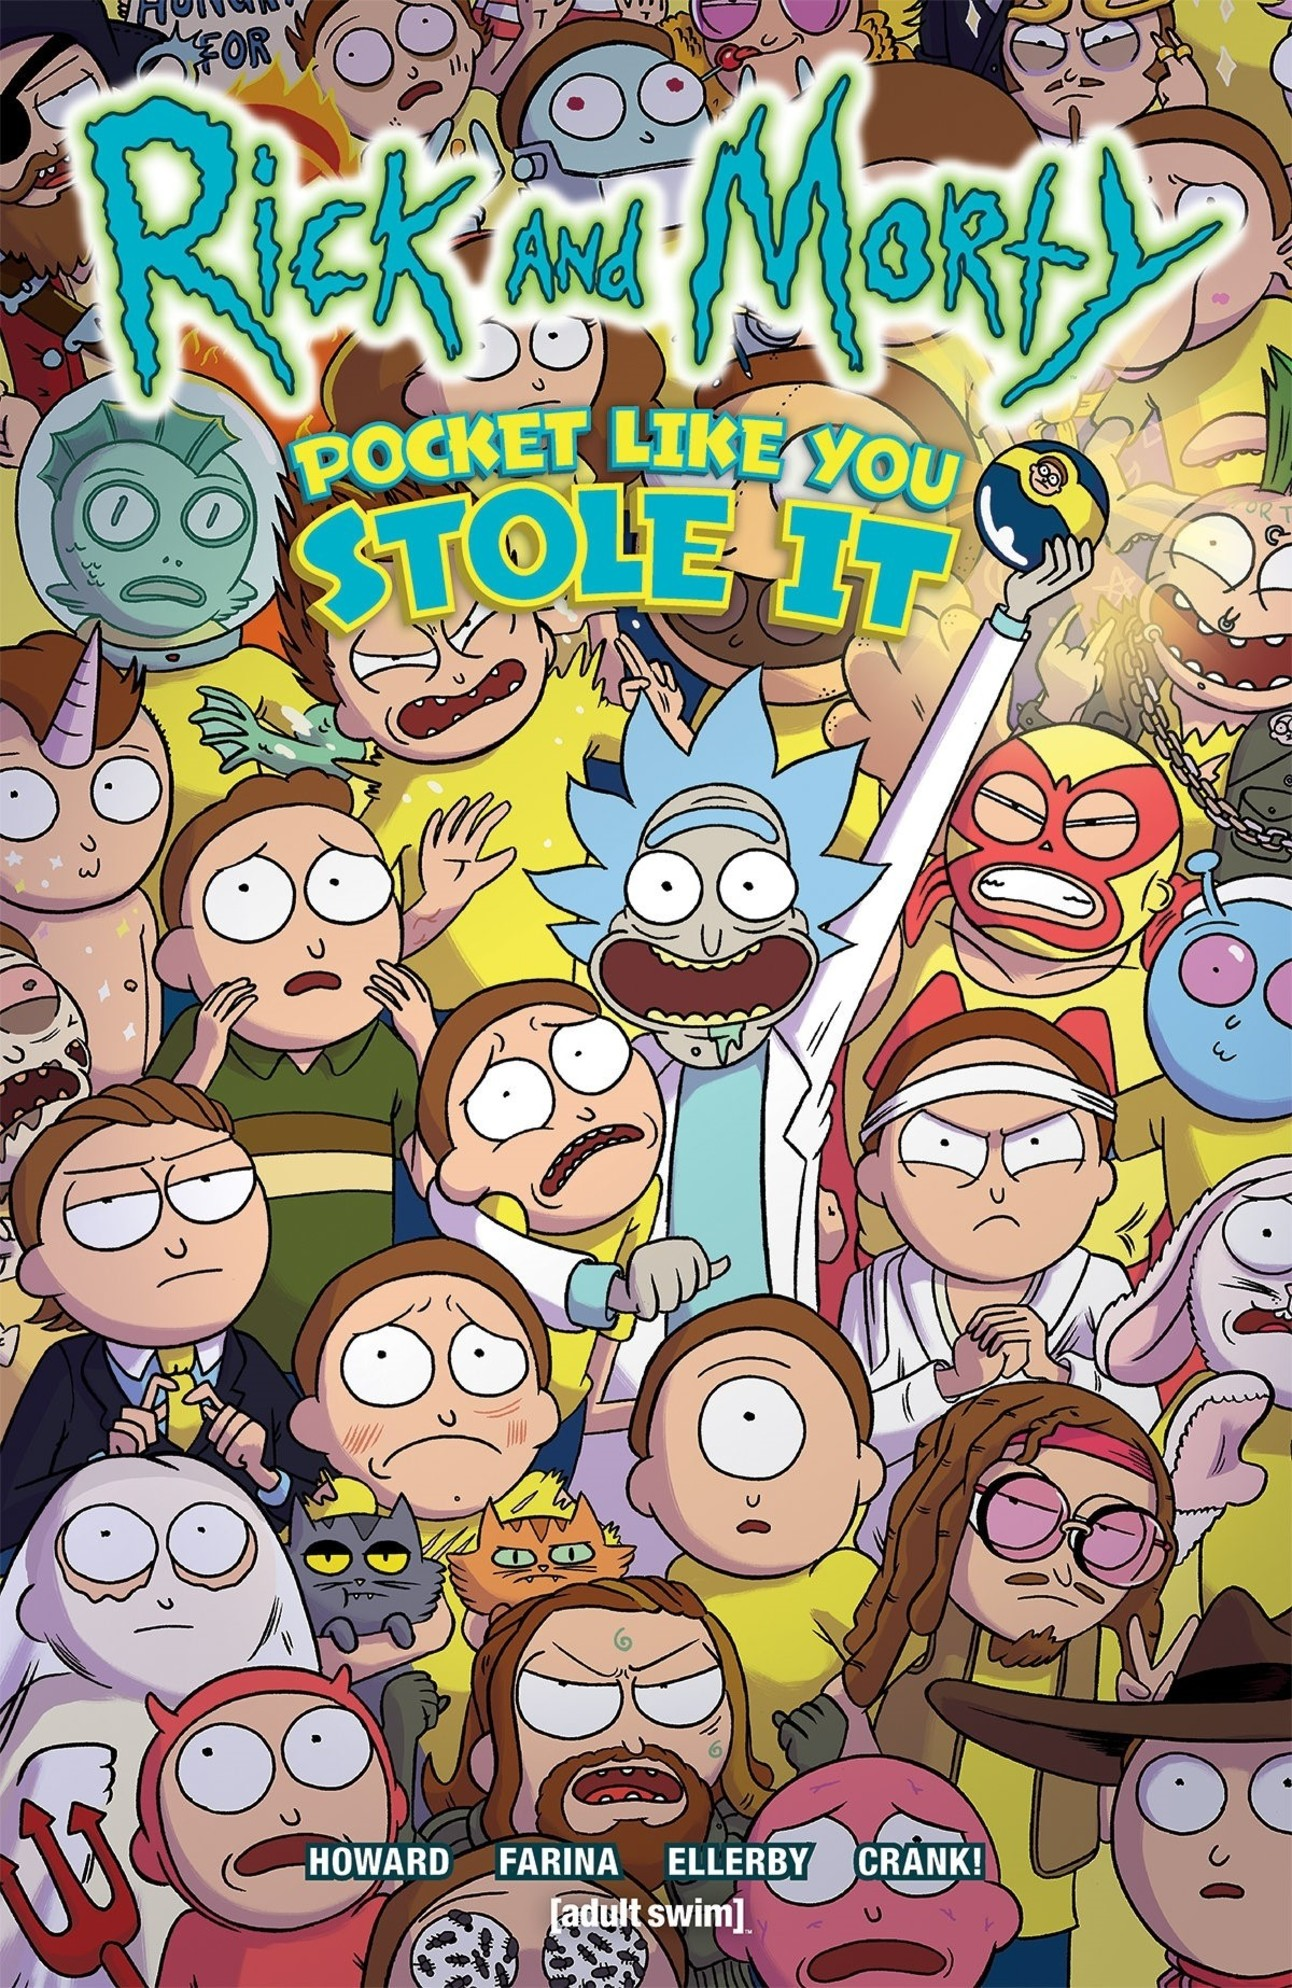 oni_rick_morty_pocket_like_you_stole_it_cover.jpg